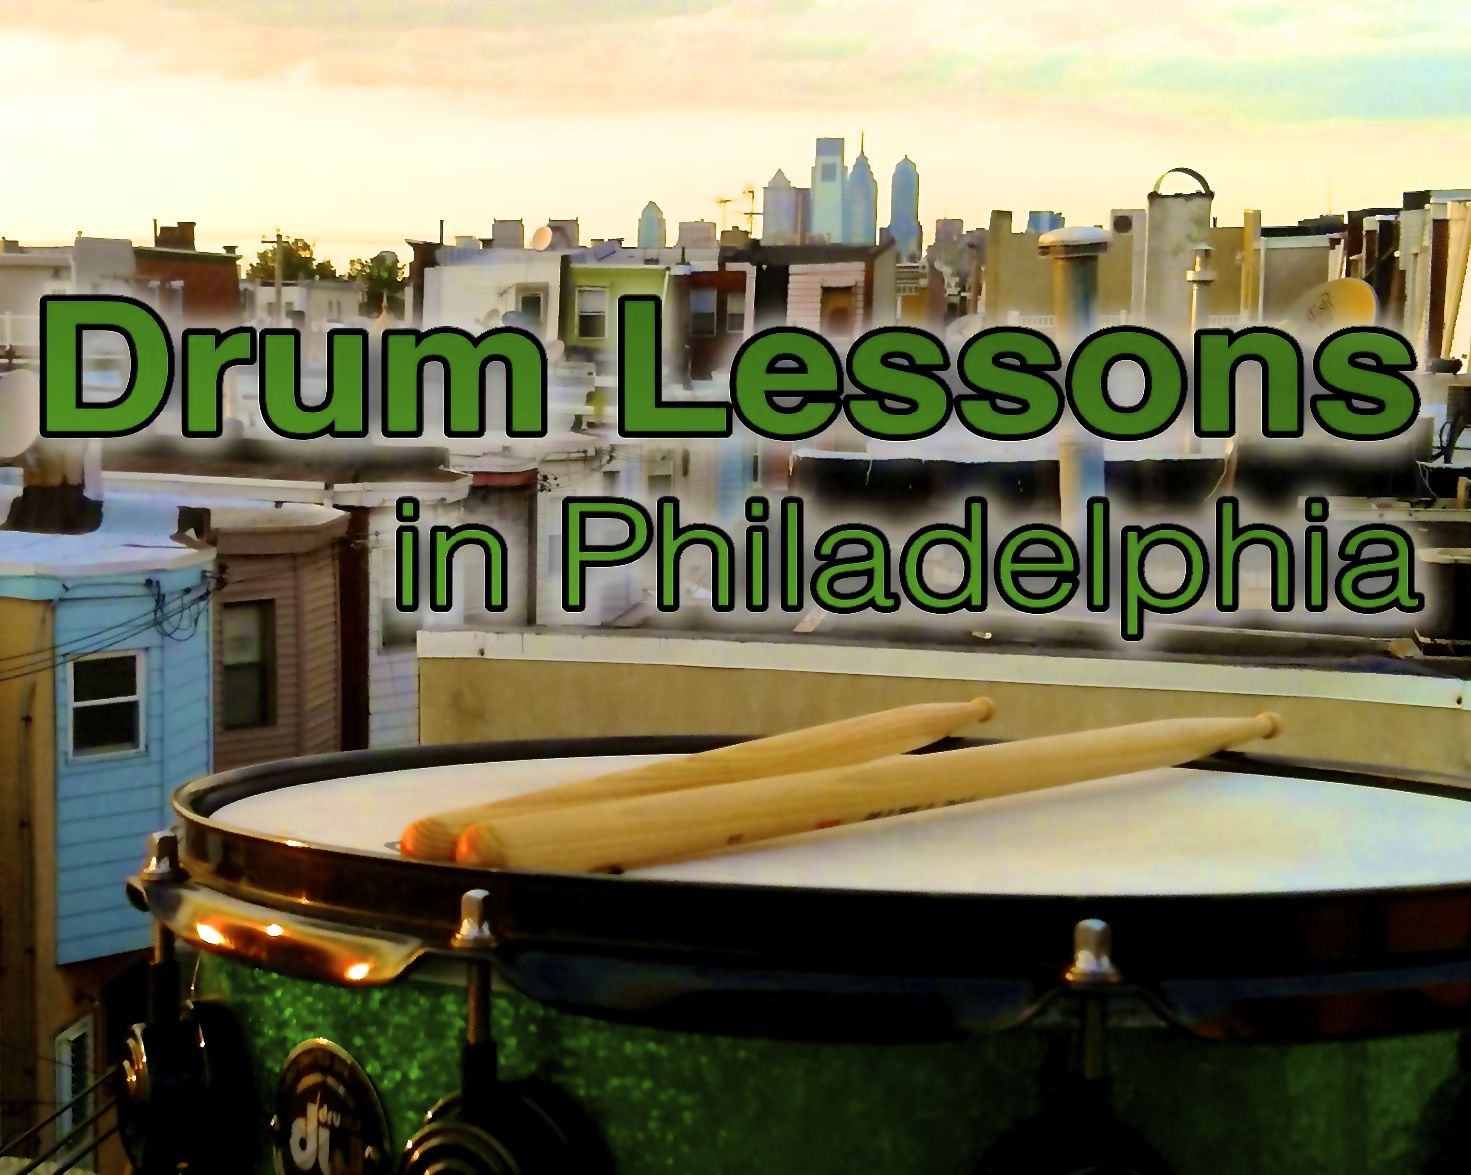 drum lessons image - Version 3.jpg